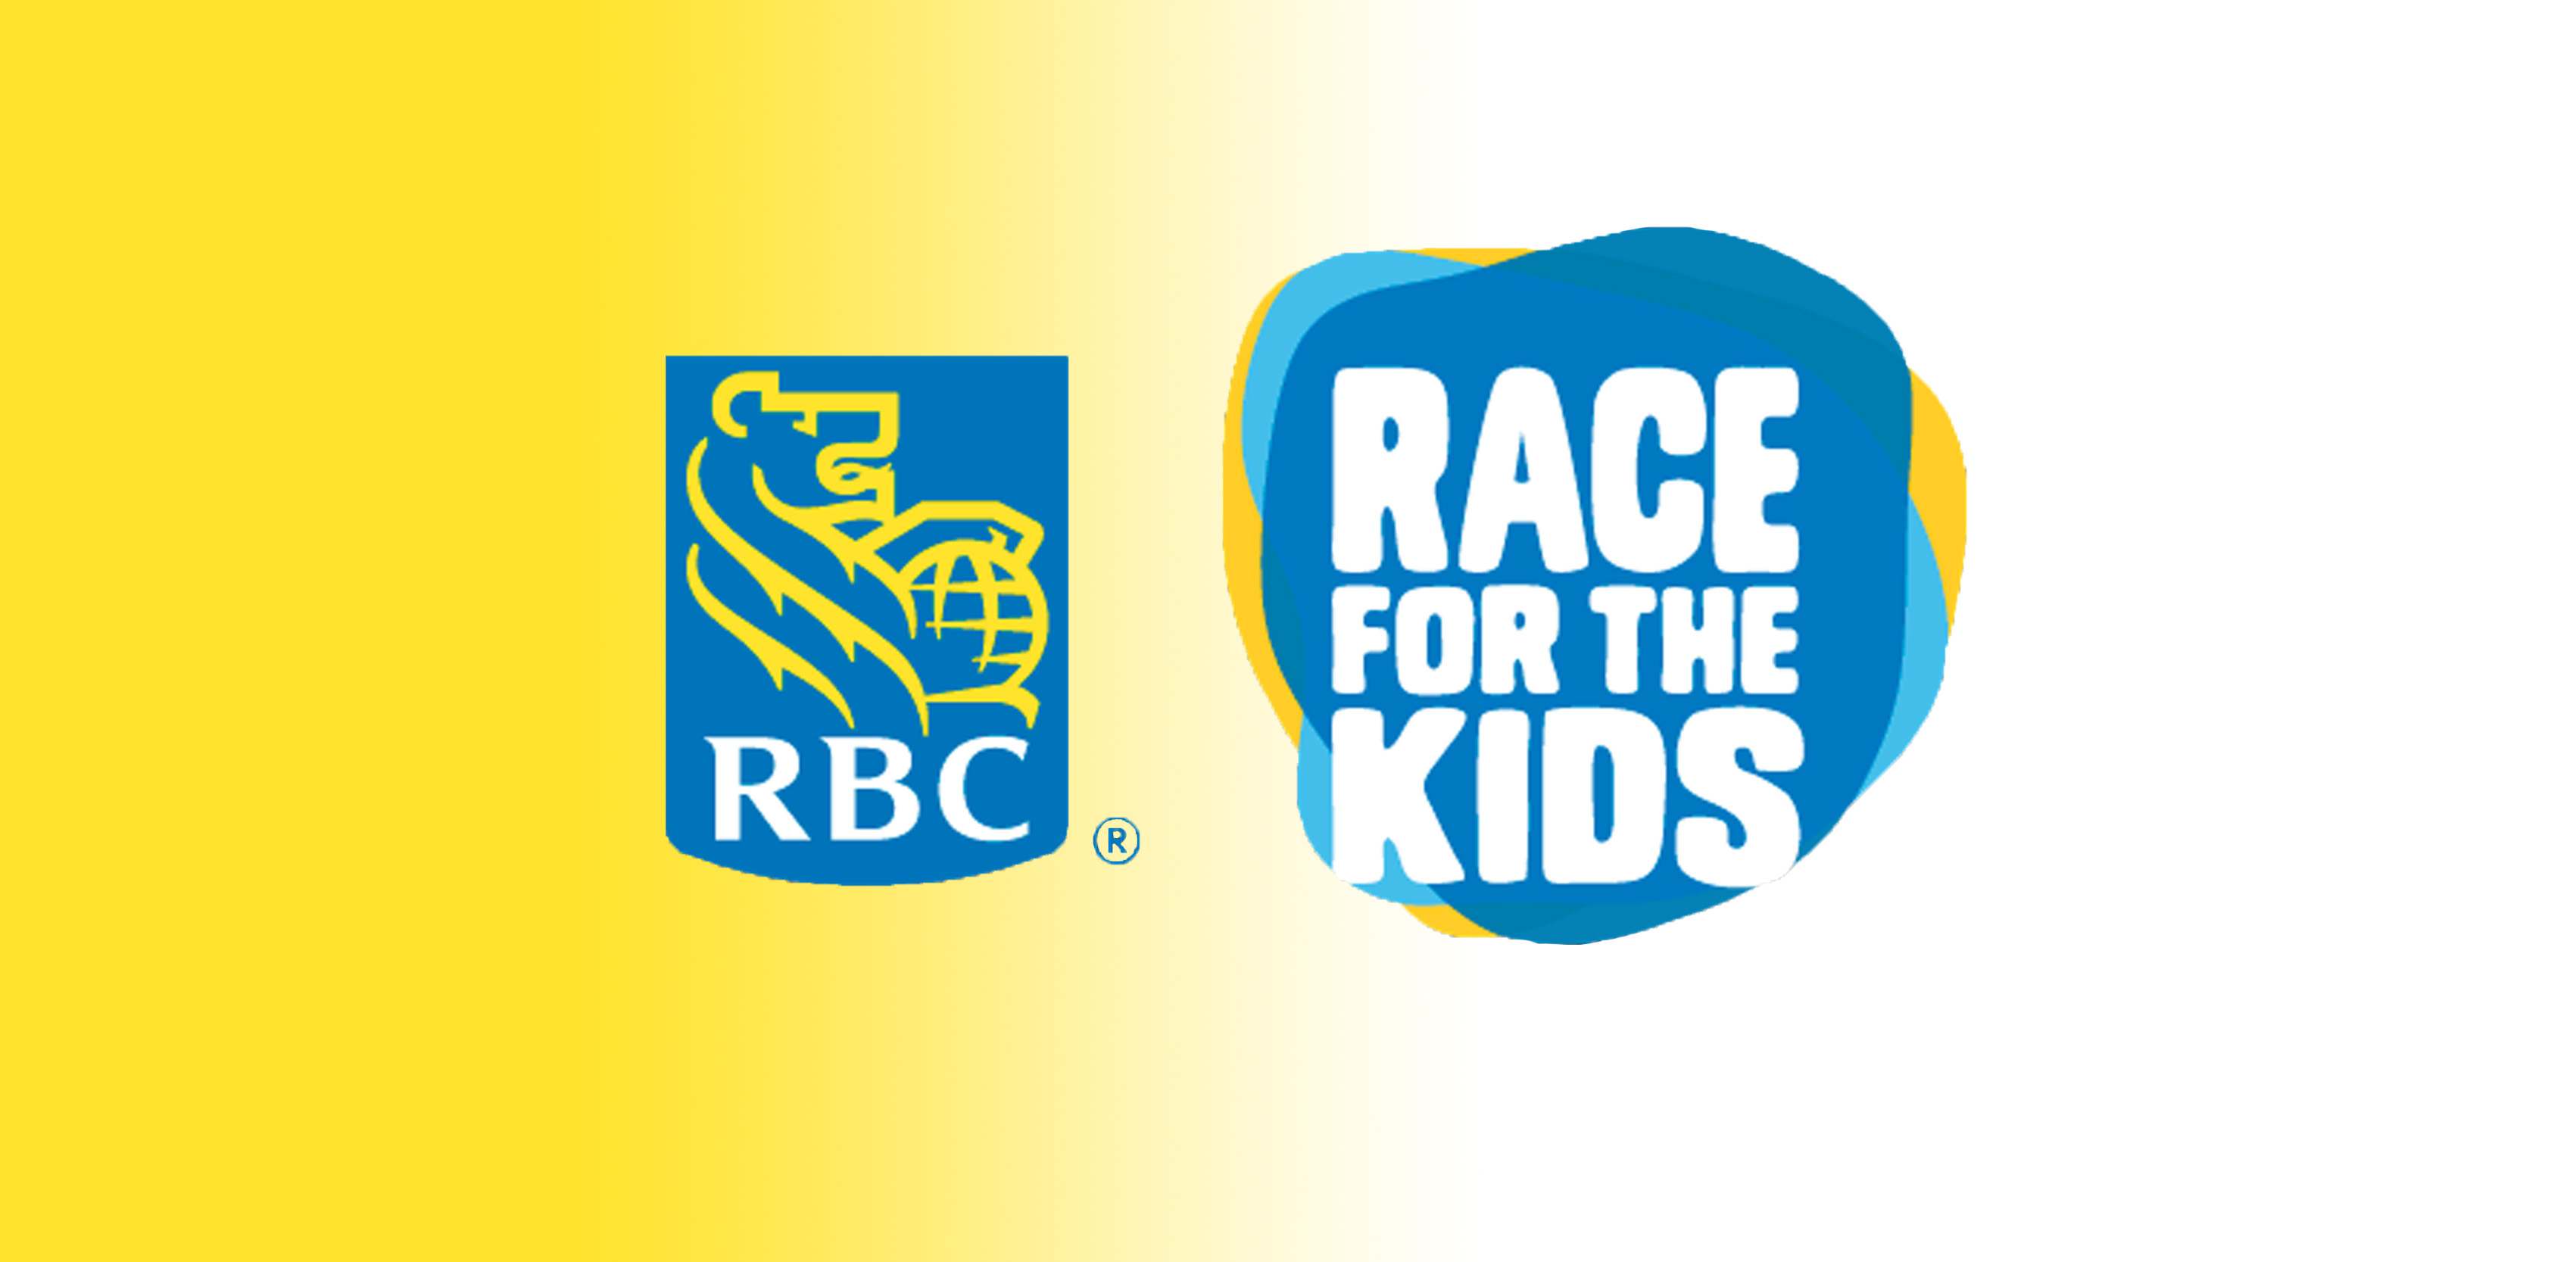 RBC Race for the Kids logos